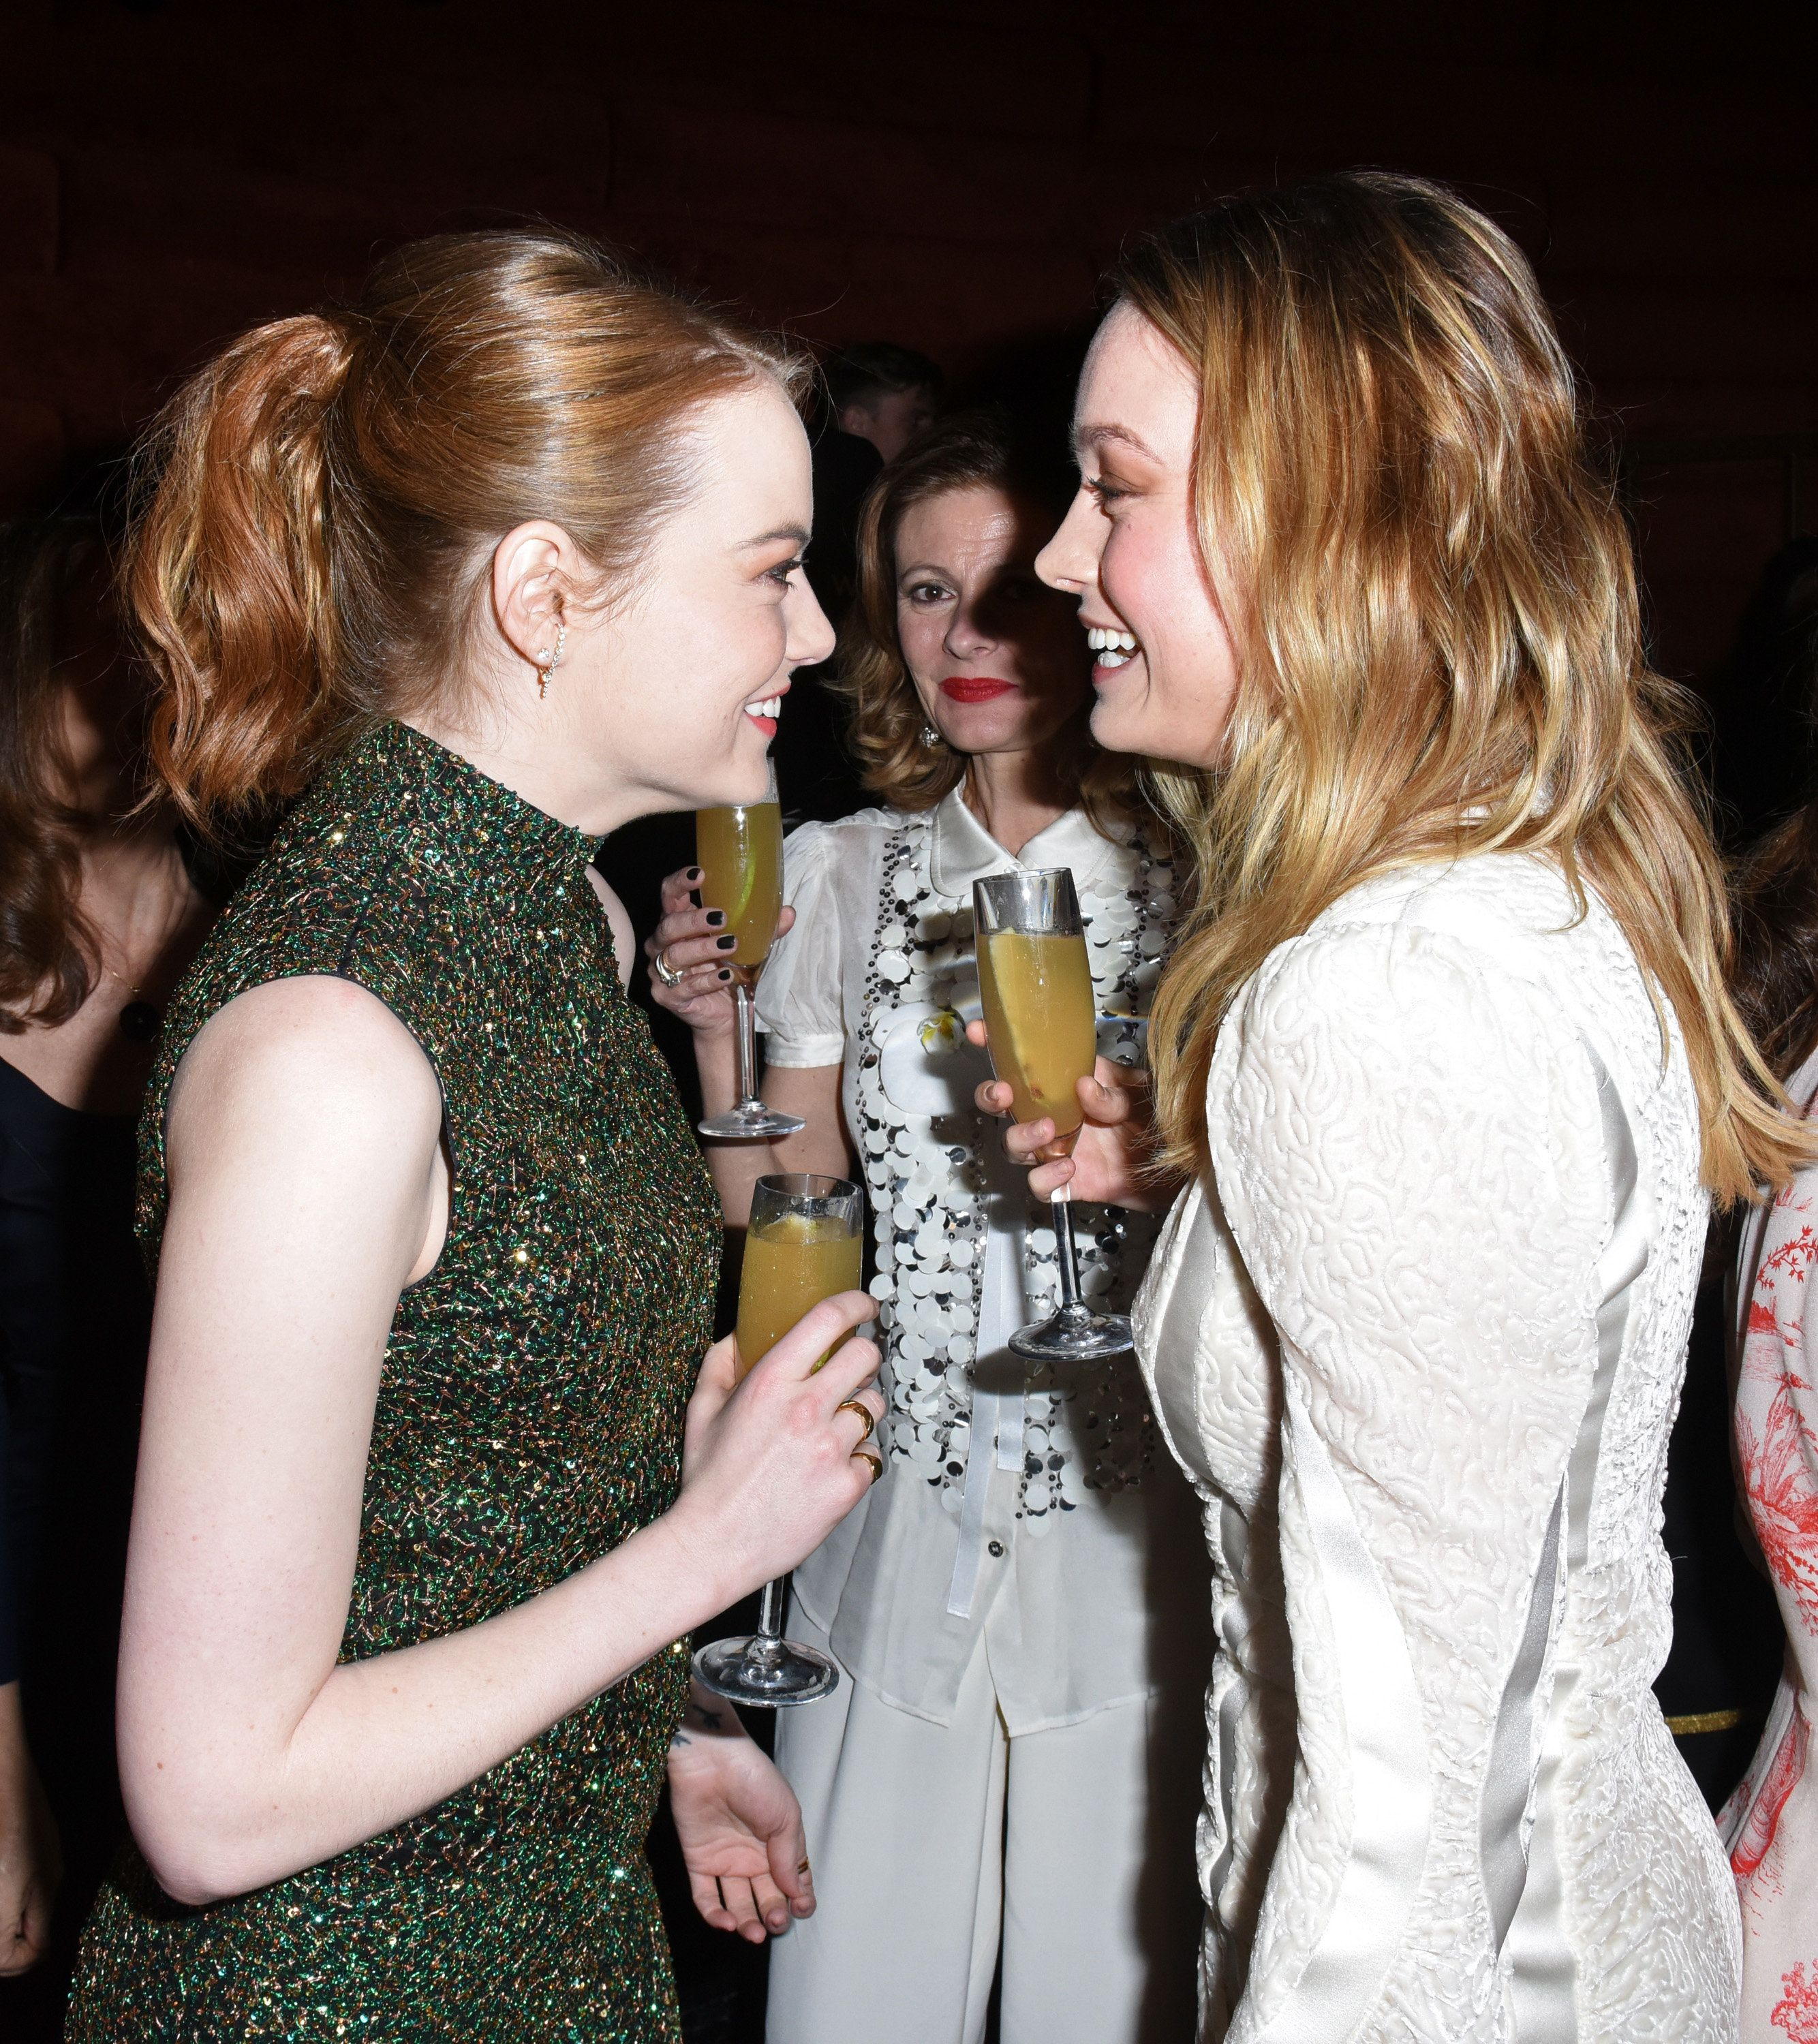 LOS ANGELES, CA - FEBRUARY 24:  Actors Emma Stone and Brie Larson attend the tenth annual Women in Film Pre-Oscar Cocktail Party presented by Max Mara and BMW at Nightingale Plaza on February 24, 2017 in Los Angeles, California.  (Photo by Vivien Killilea/Getty Images for Women In Film)